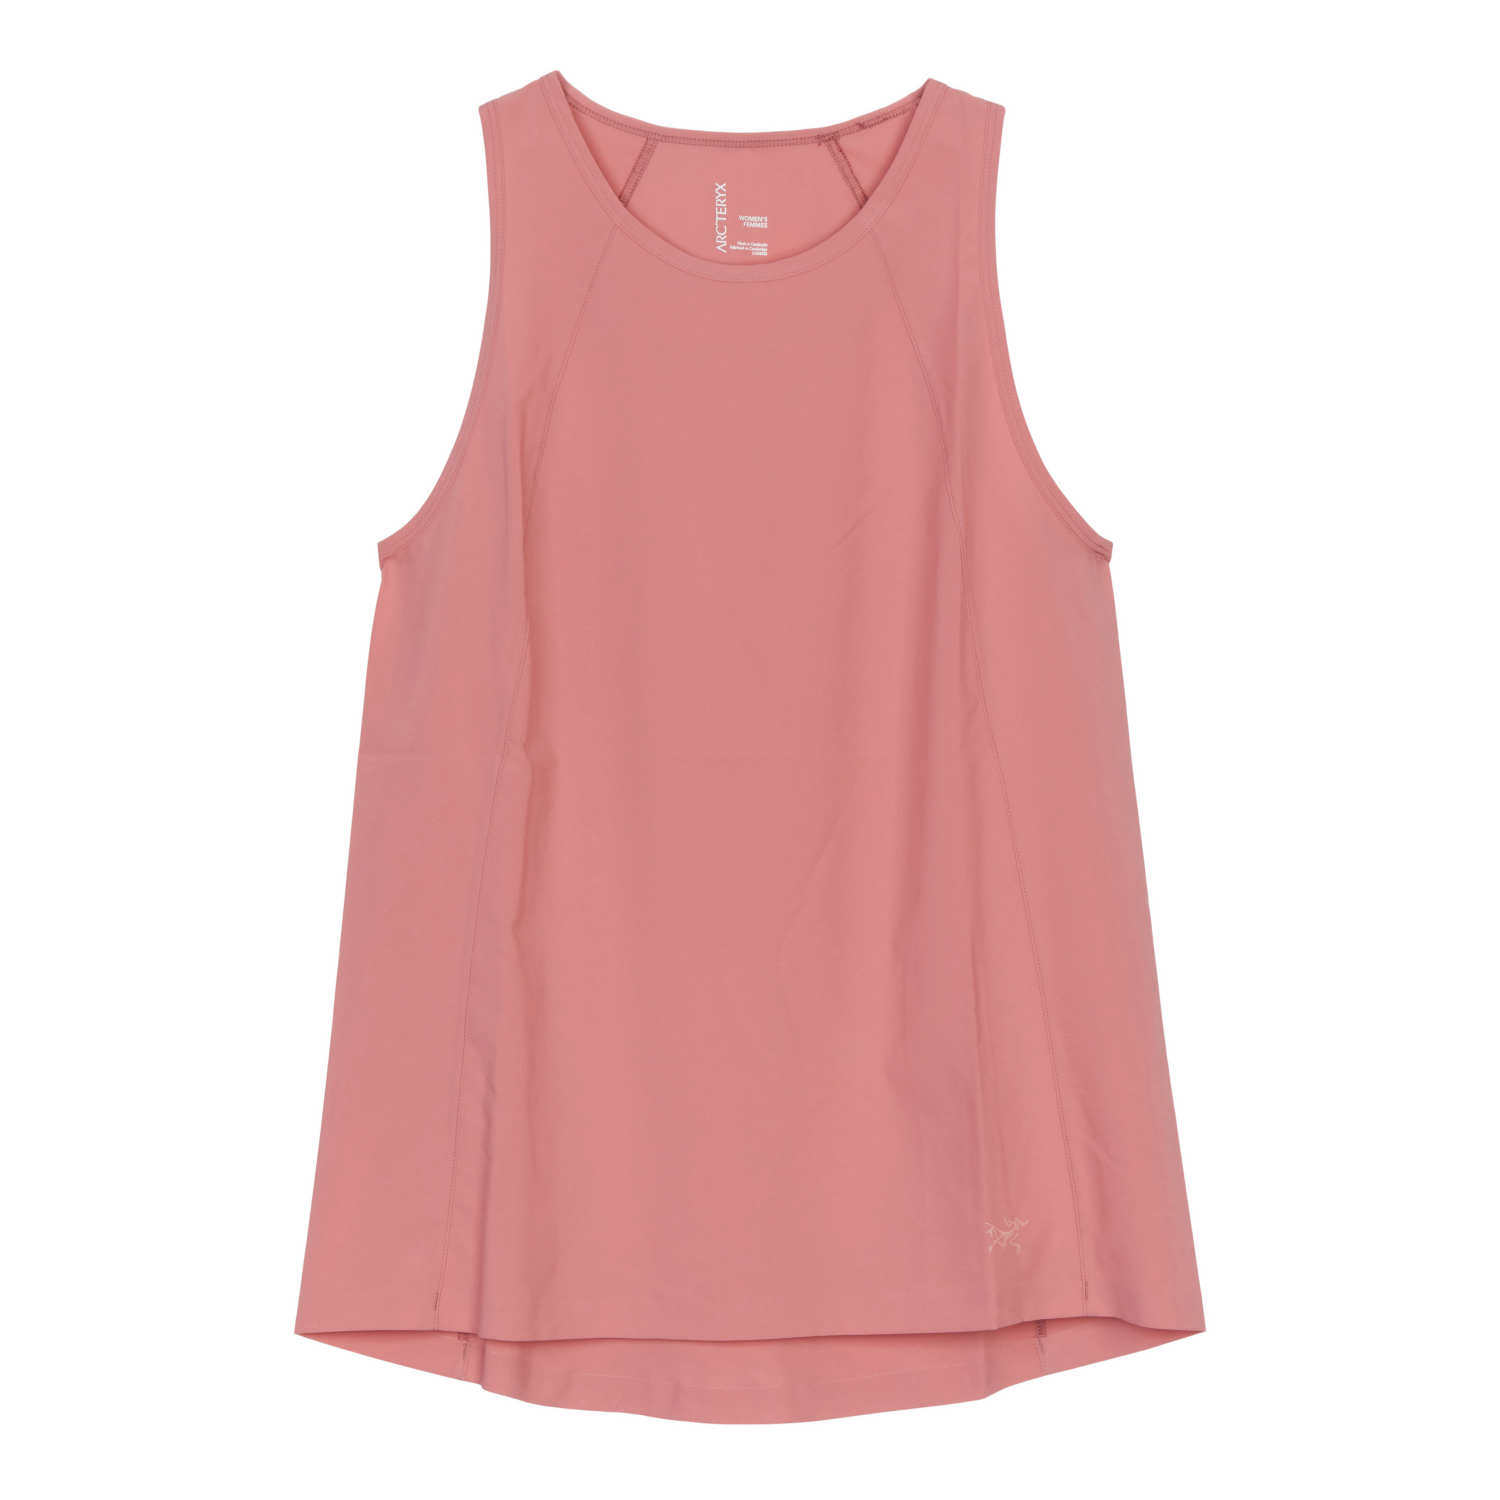 Main product image: Contenta Sleeveless Top Women's